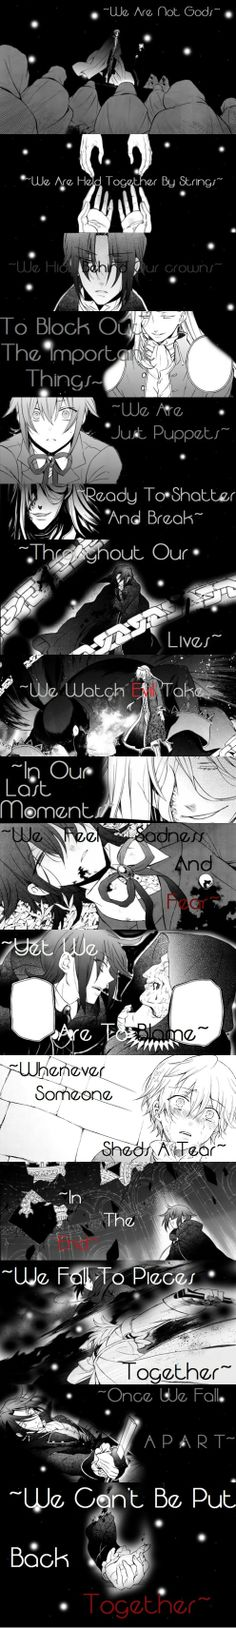 """We Are Not Gods"" by BornToRuleBuiltToFall 